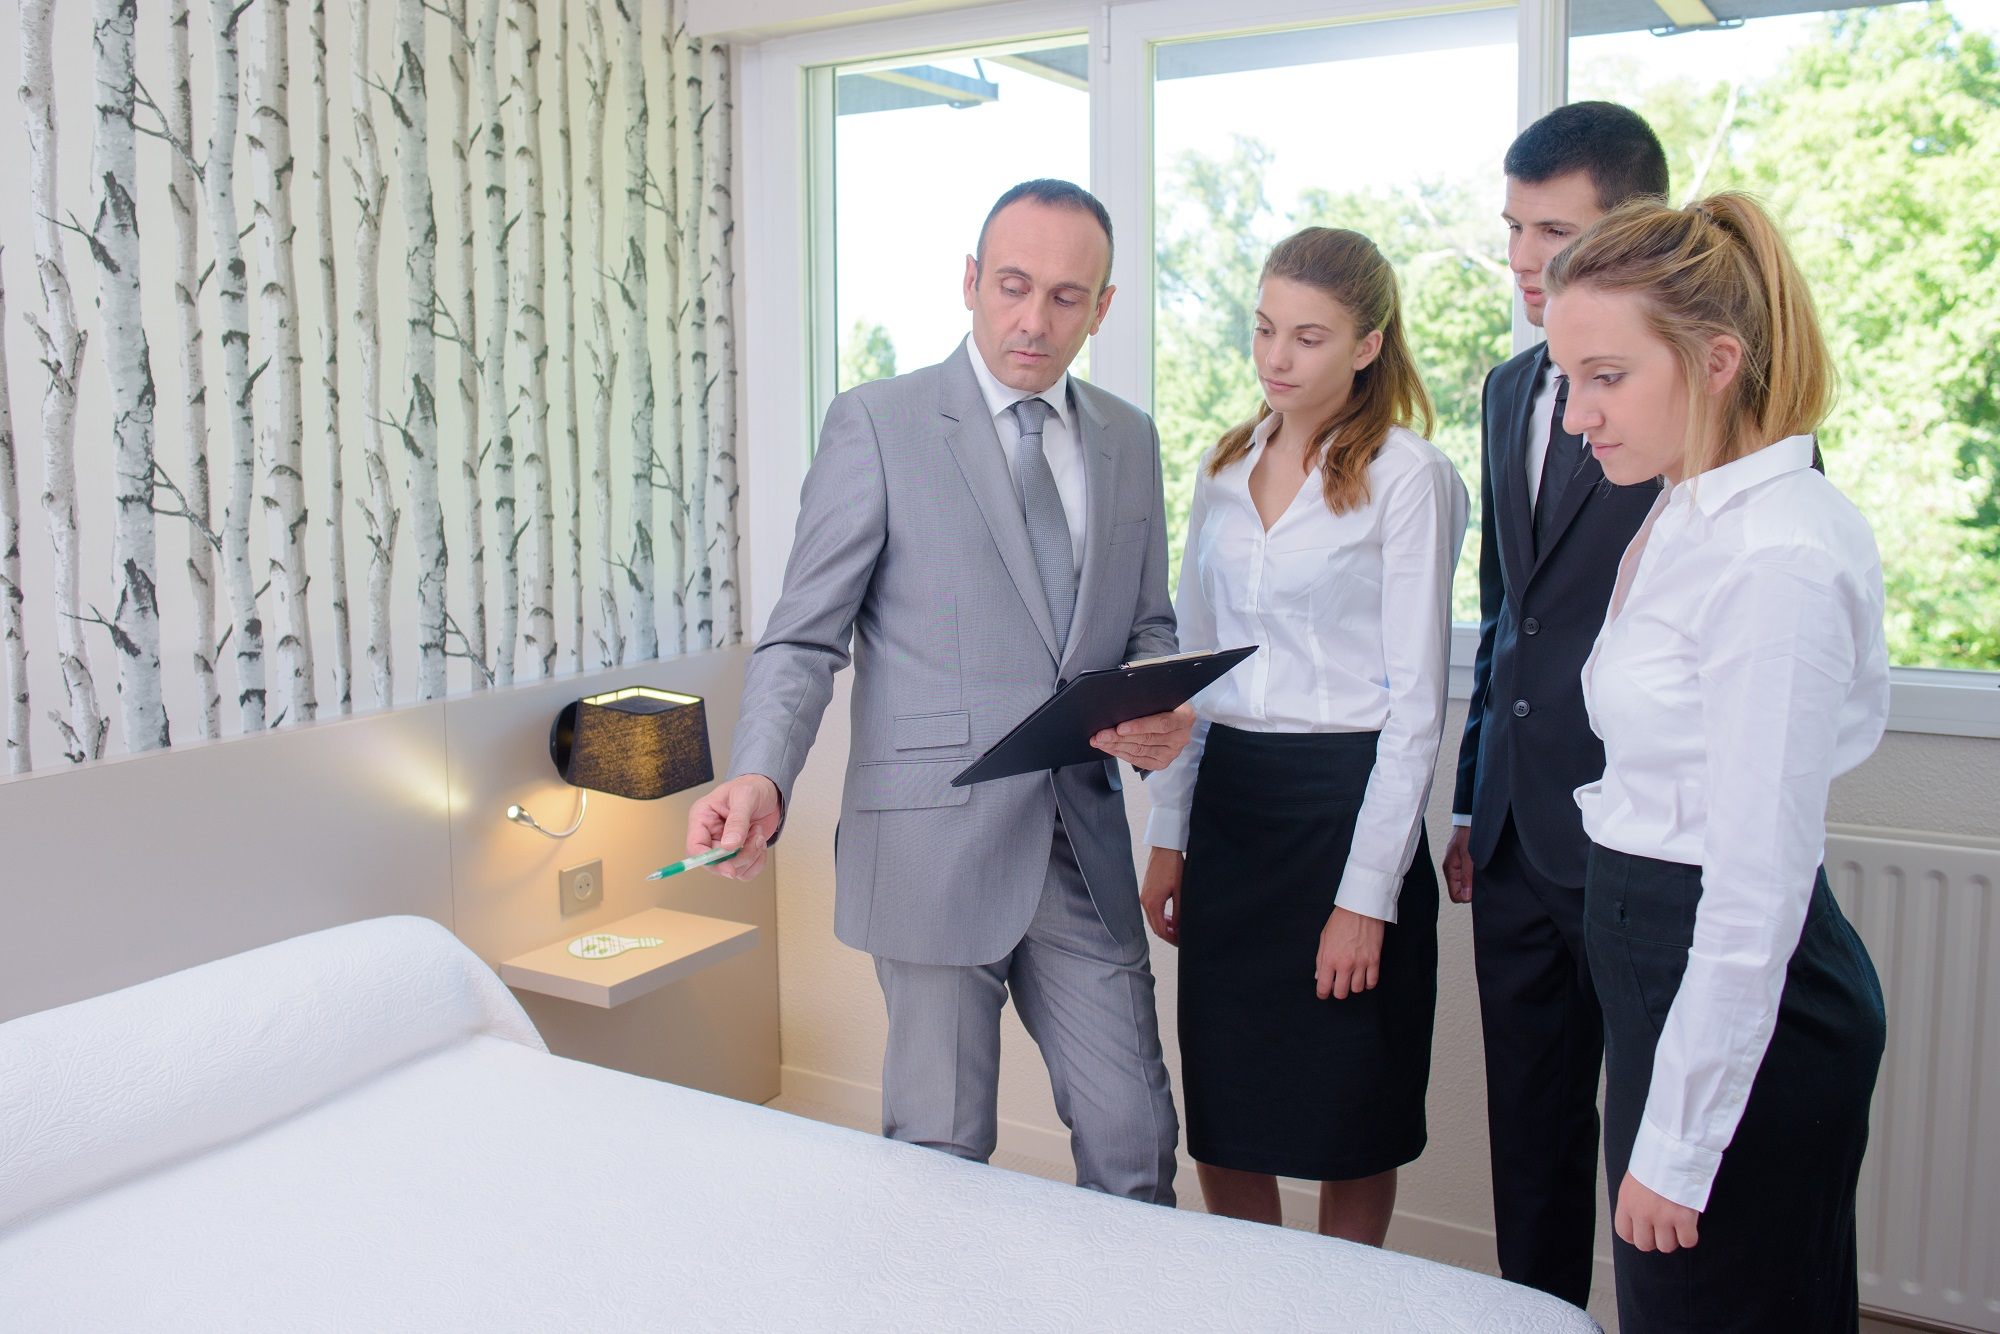 Supervisor in bedroom instructing hotel staff